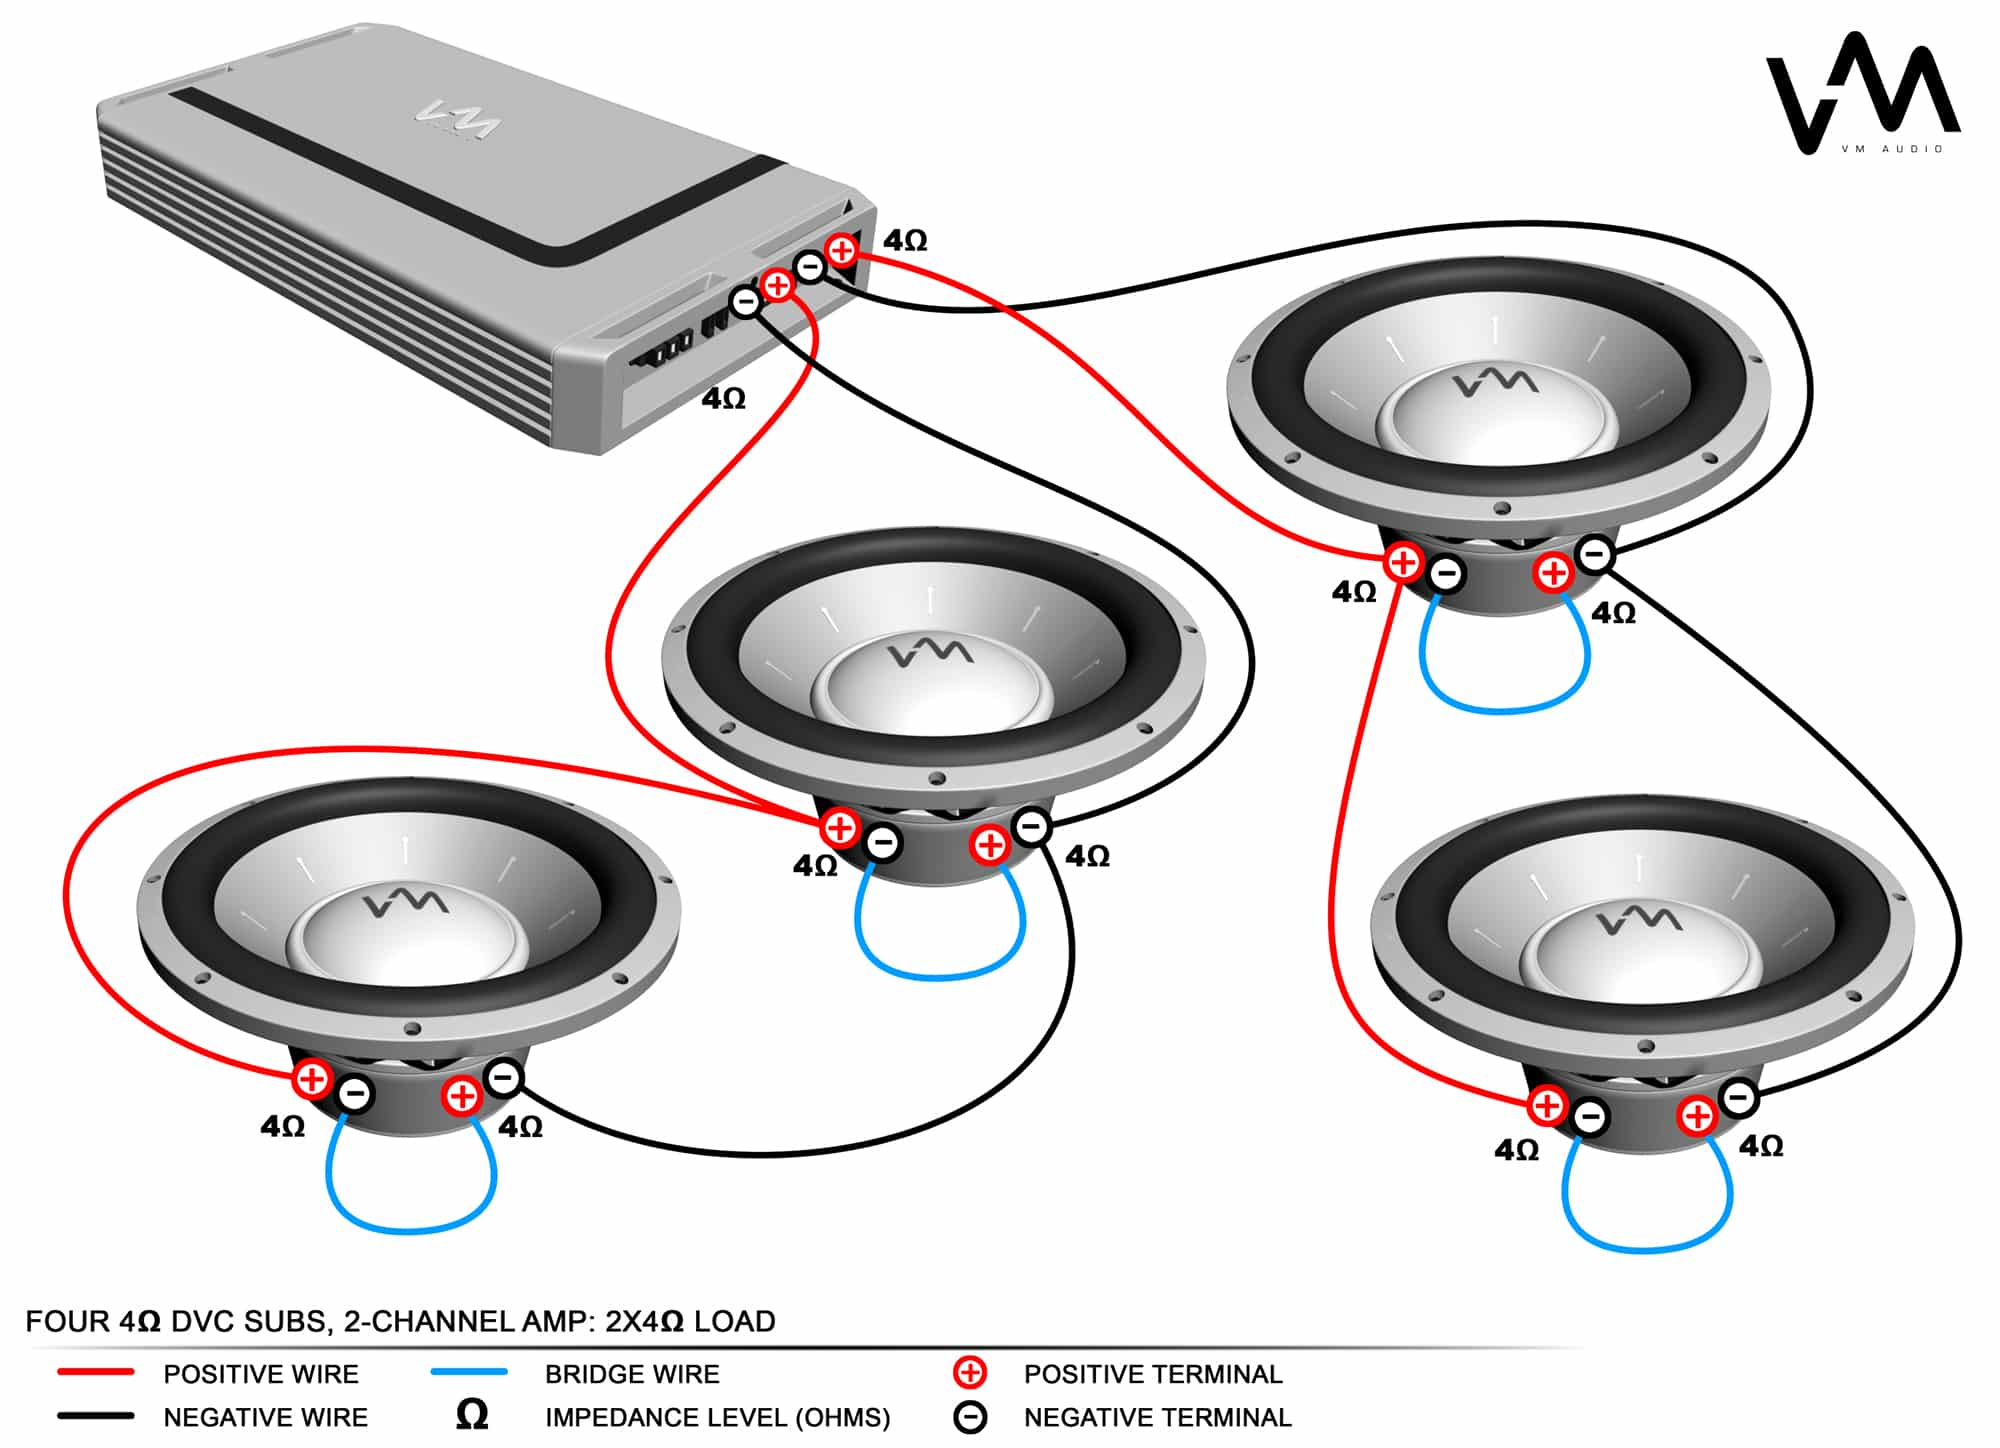 How To Connect Four Speakers A 2 Channel Amp For Pa Speaker Wiring Diagrams